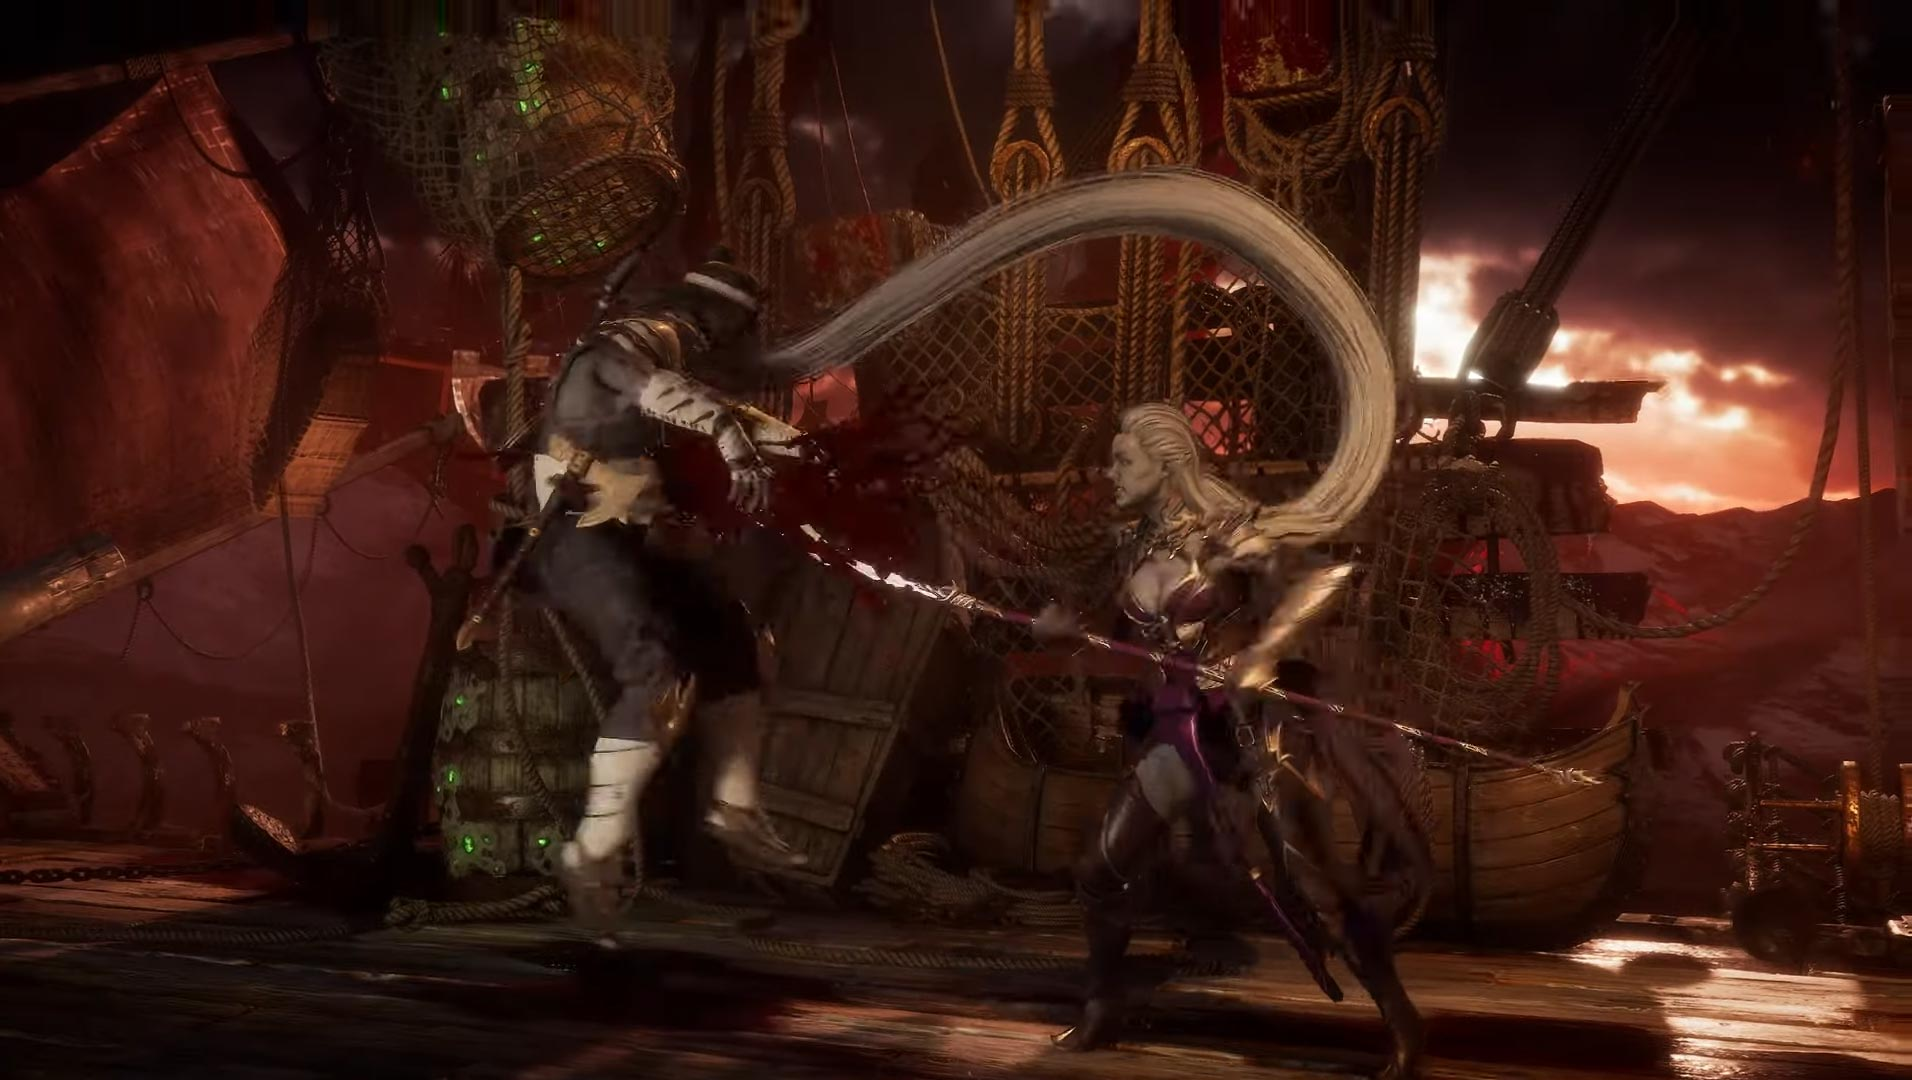 Sindel trailer 2 out of 8 image gallery